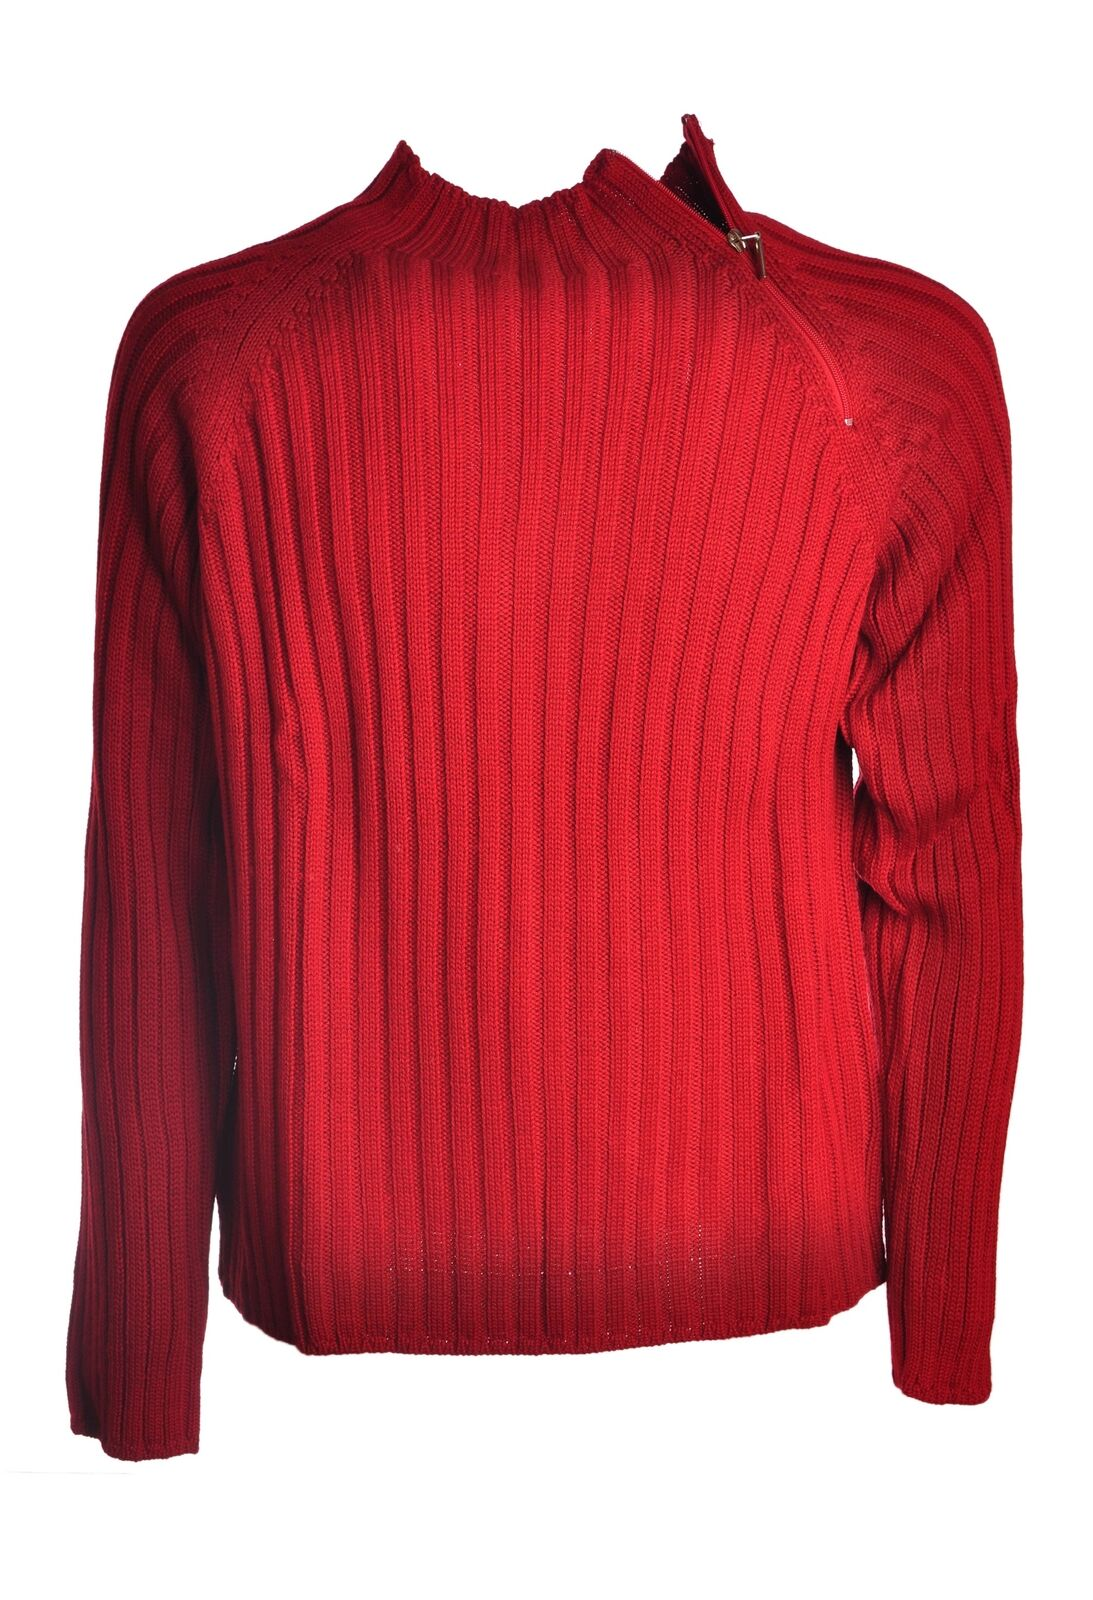 Cube  -  Sweaters - Male - Red - 4365126A184024